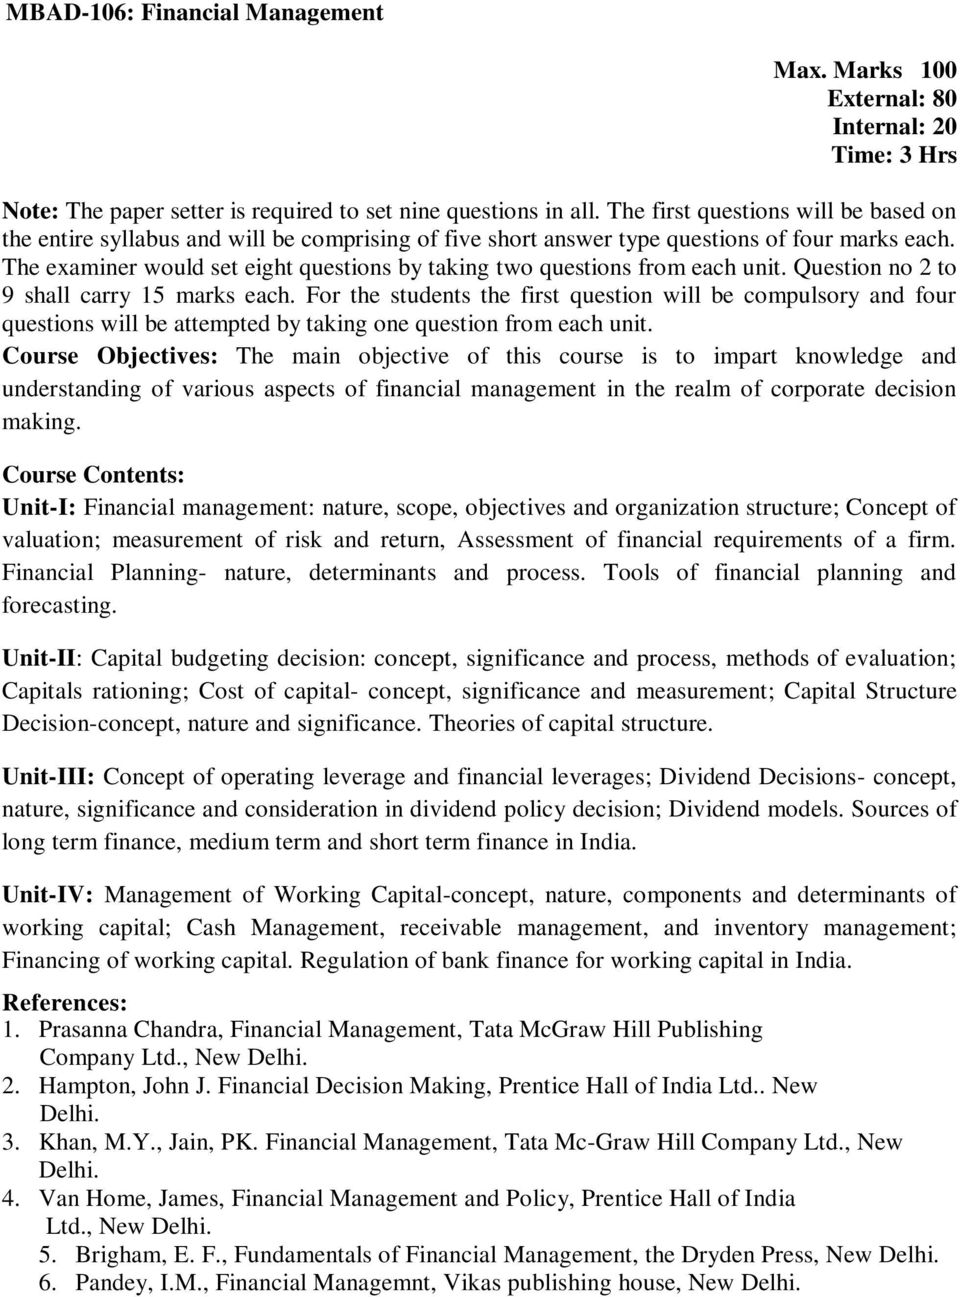 Unit-I: Financial management: nature, scope, objectives and organization structure; Concept of valuation; measurement of risk and return, Assessment of financial requirements of a firm.